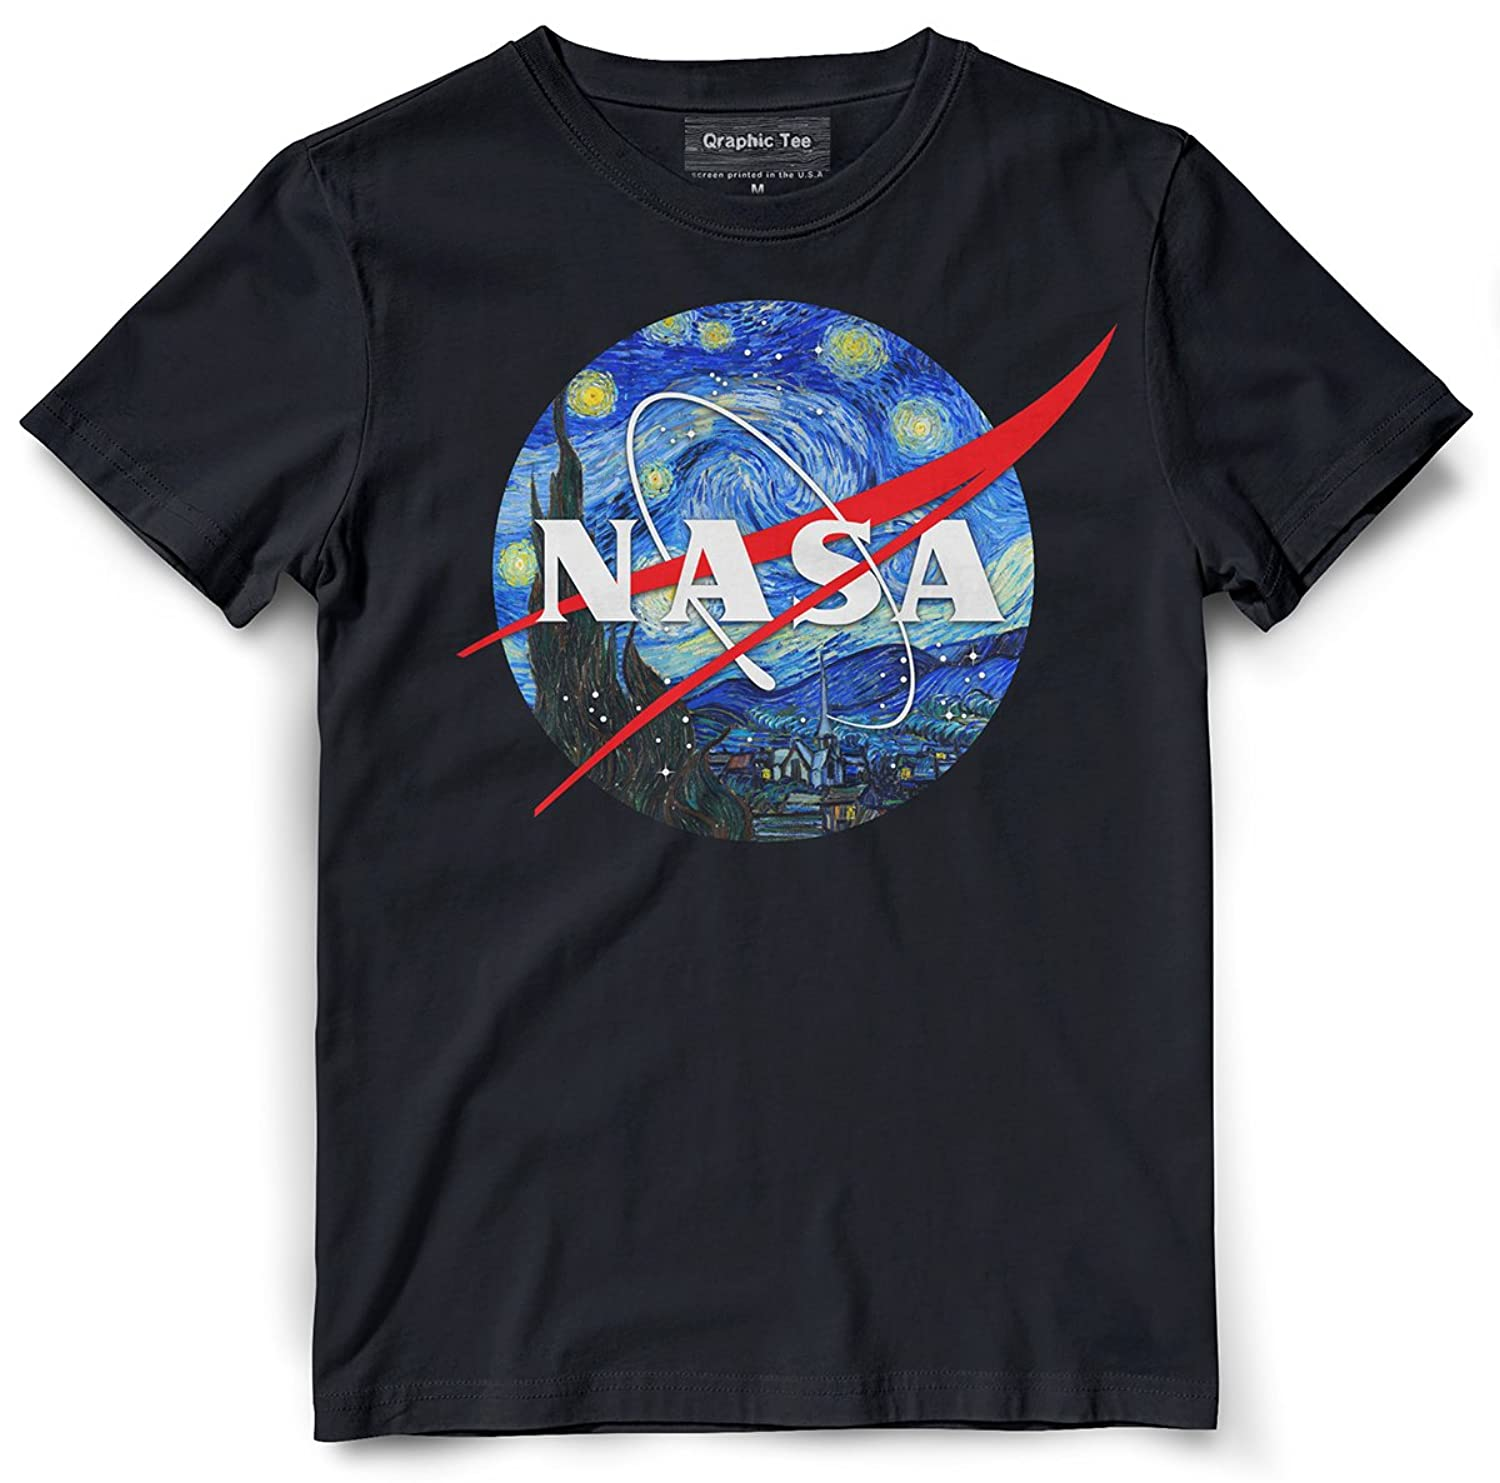 8ebe4f62 Top11: NASA t-shirt, Starry Night t-shirt, SpaceX, Science, Space, Elon  Musk, Engineer